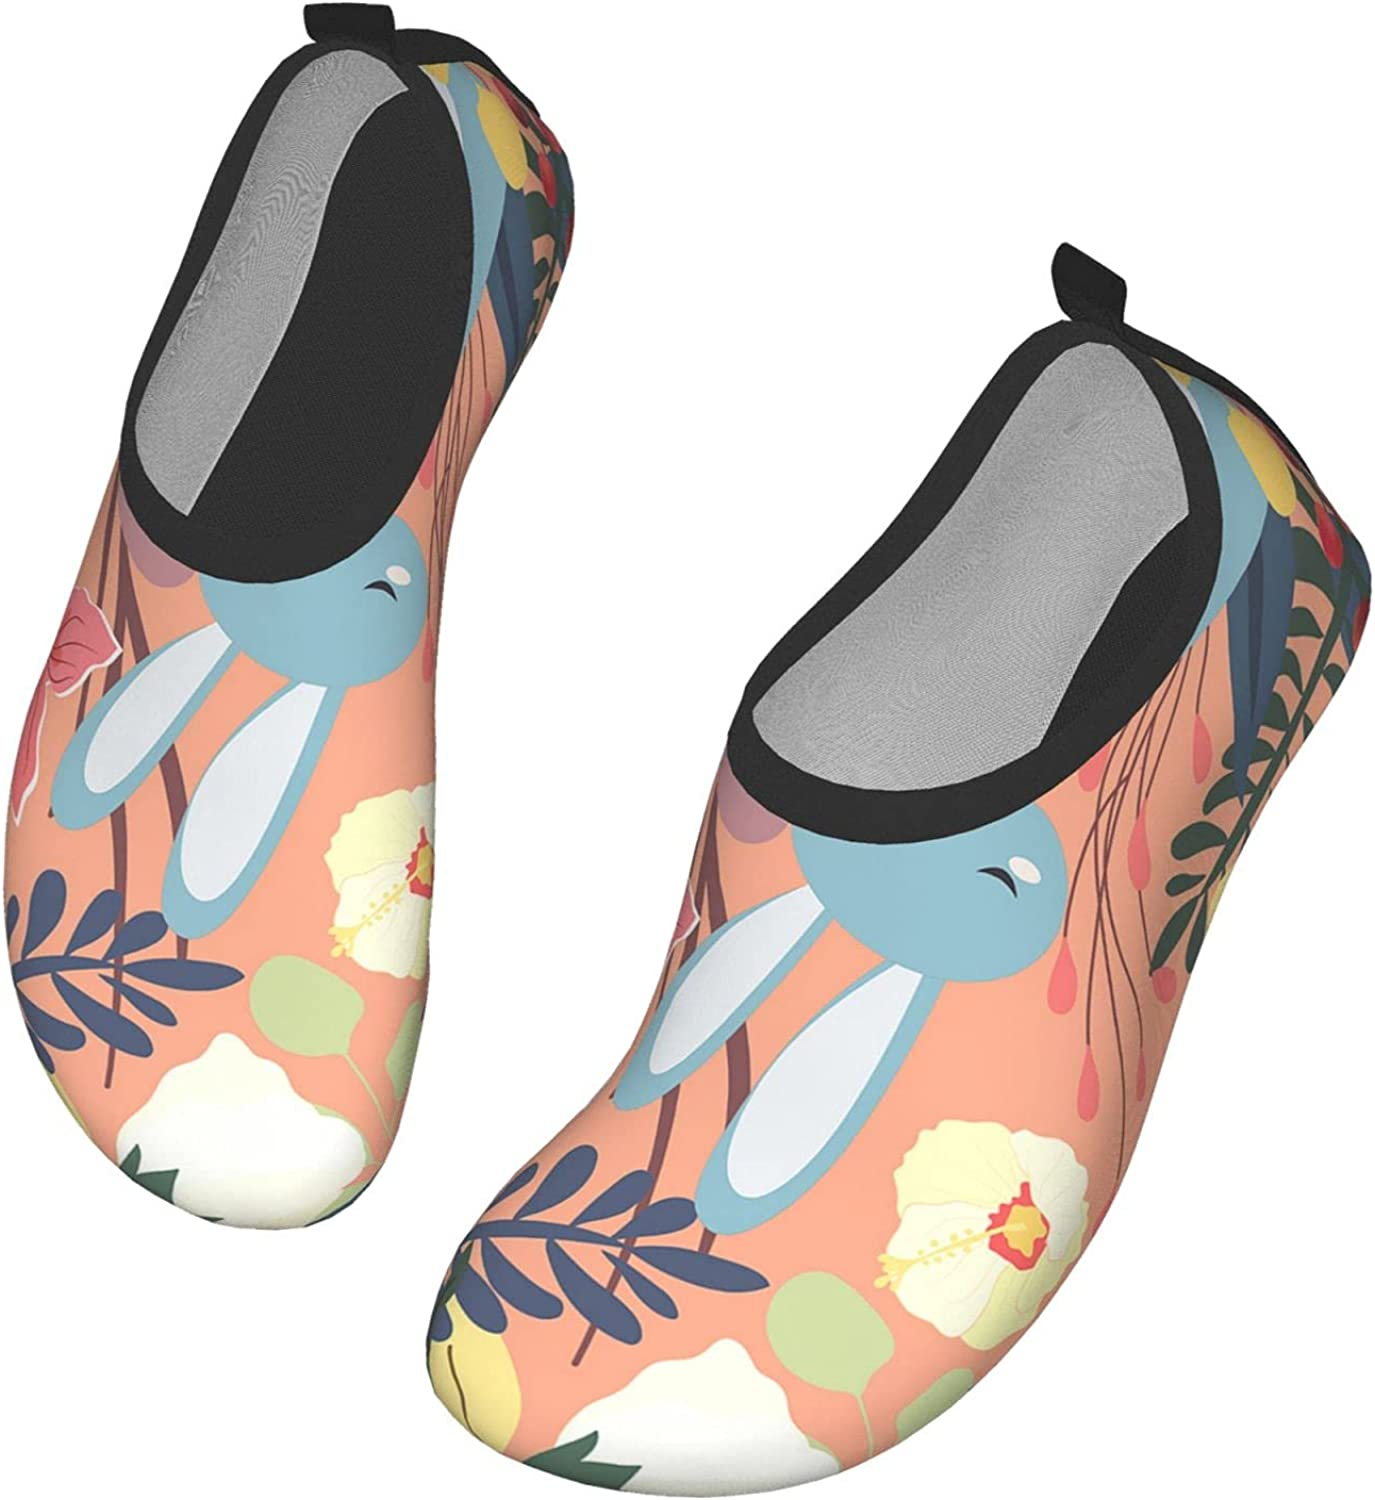 IBILIU Couple Rabbit Water Shoes,Cute Bunny in Colorful Forest Flower Leaf Frame Quick-Dry Barefoot Aqua Socks